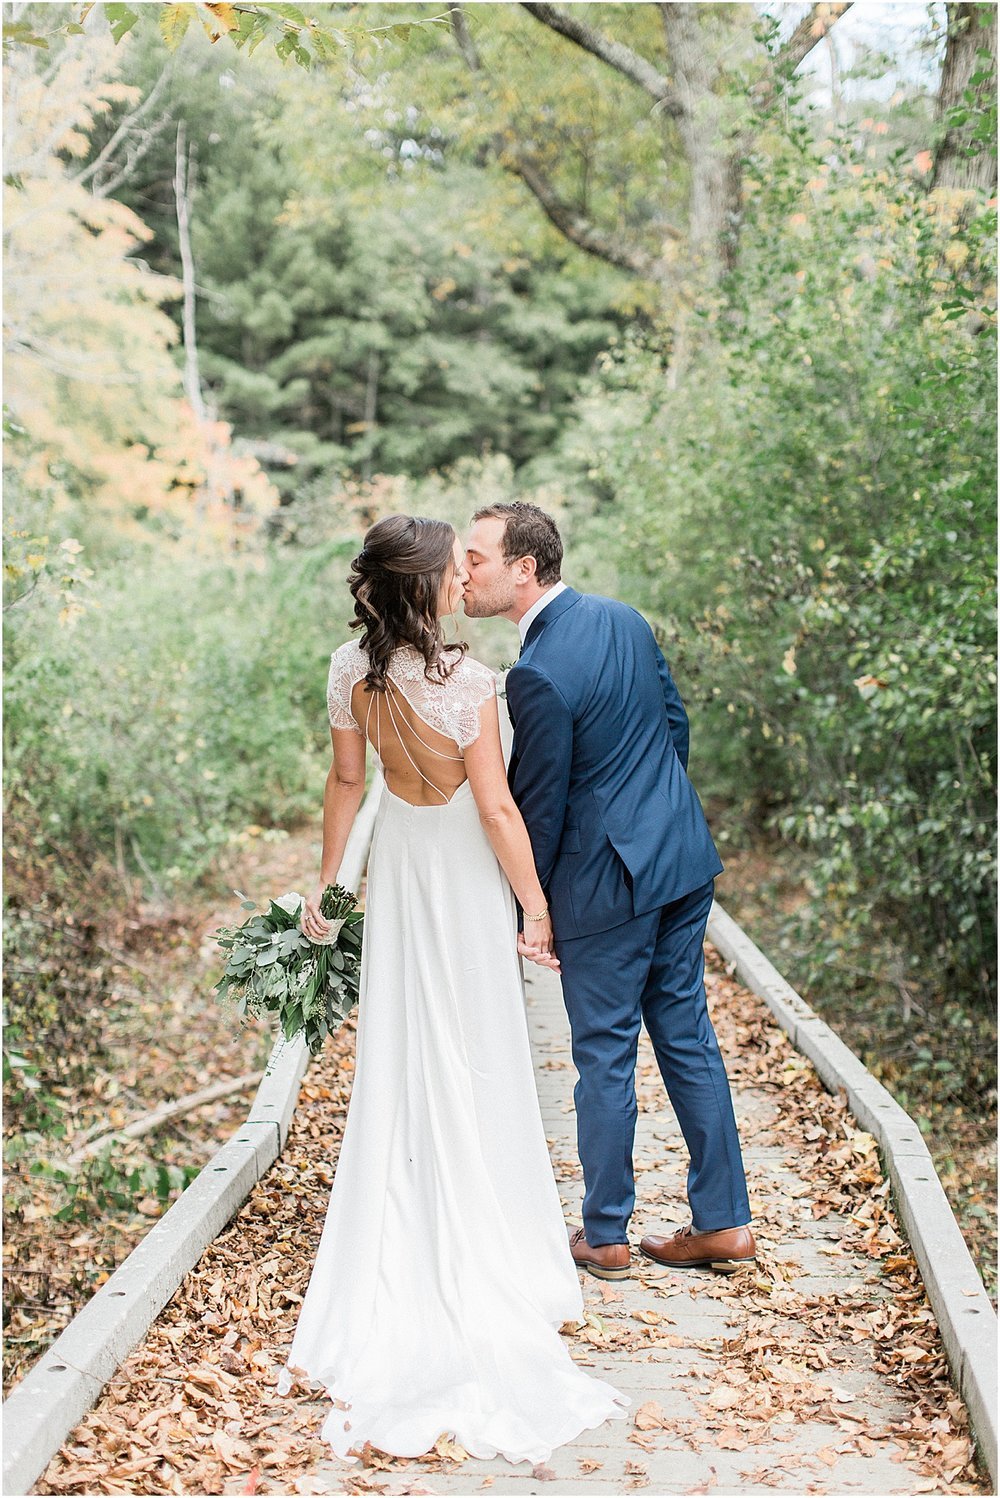 jenna_mike_willowdale_estate_topsfield_neutral_whites_greens_fall_cape_cod_boston_wedding_photographer_meredith_jane_photography_photo_1435.jpg